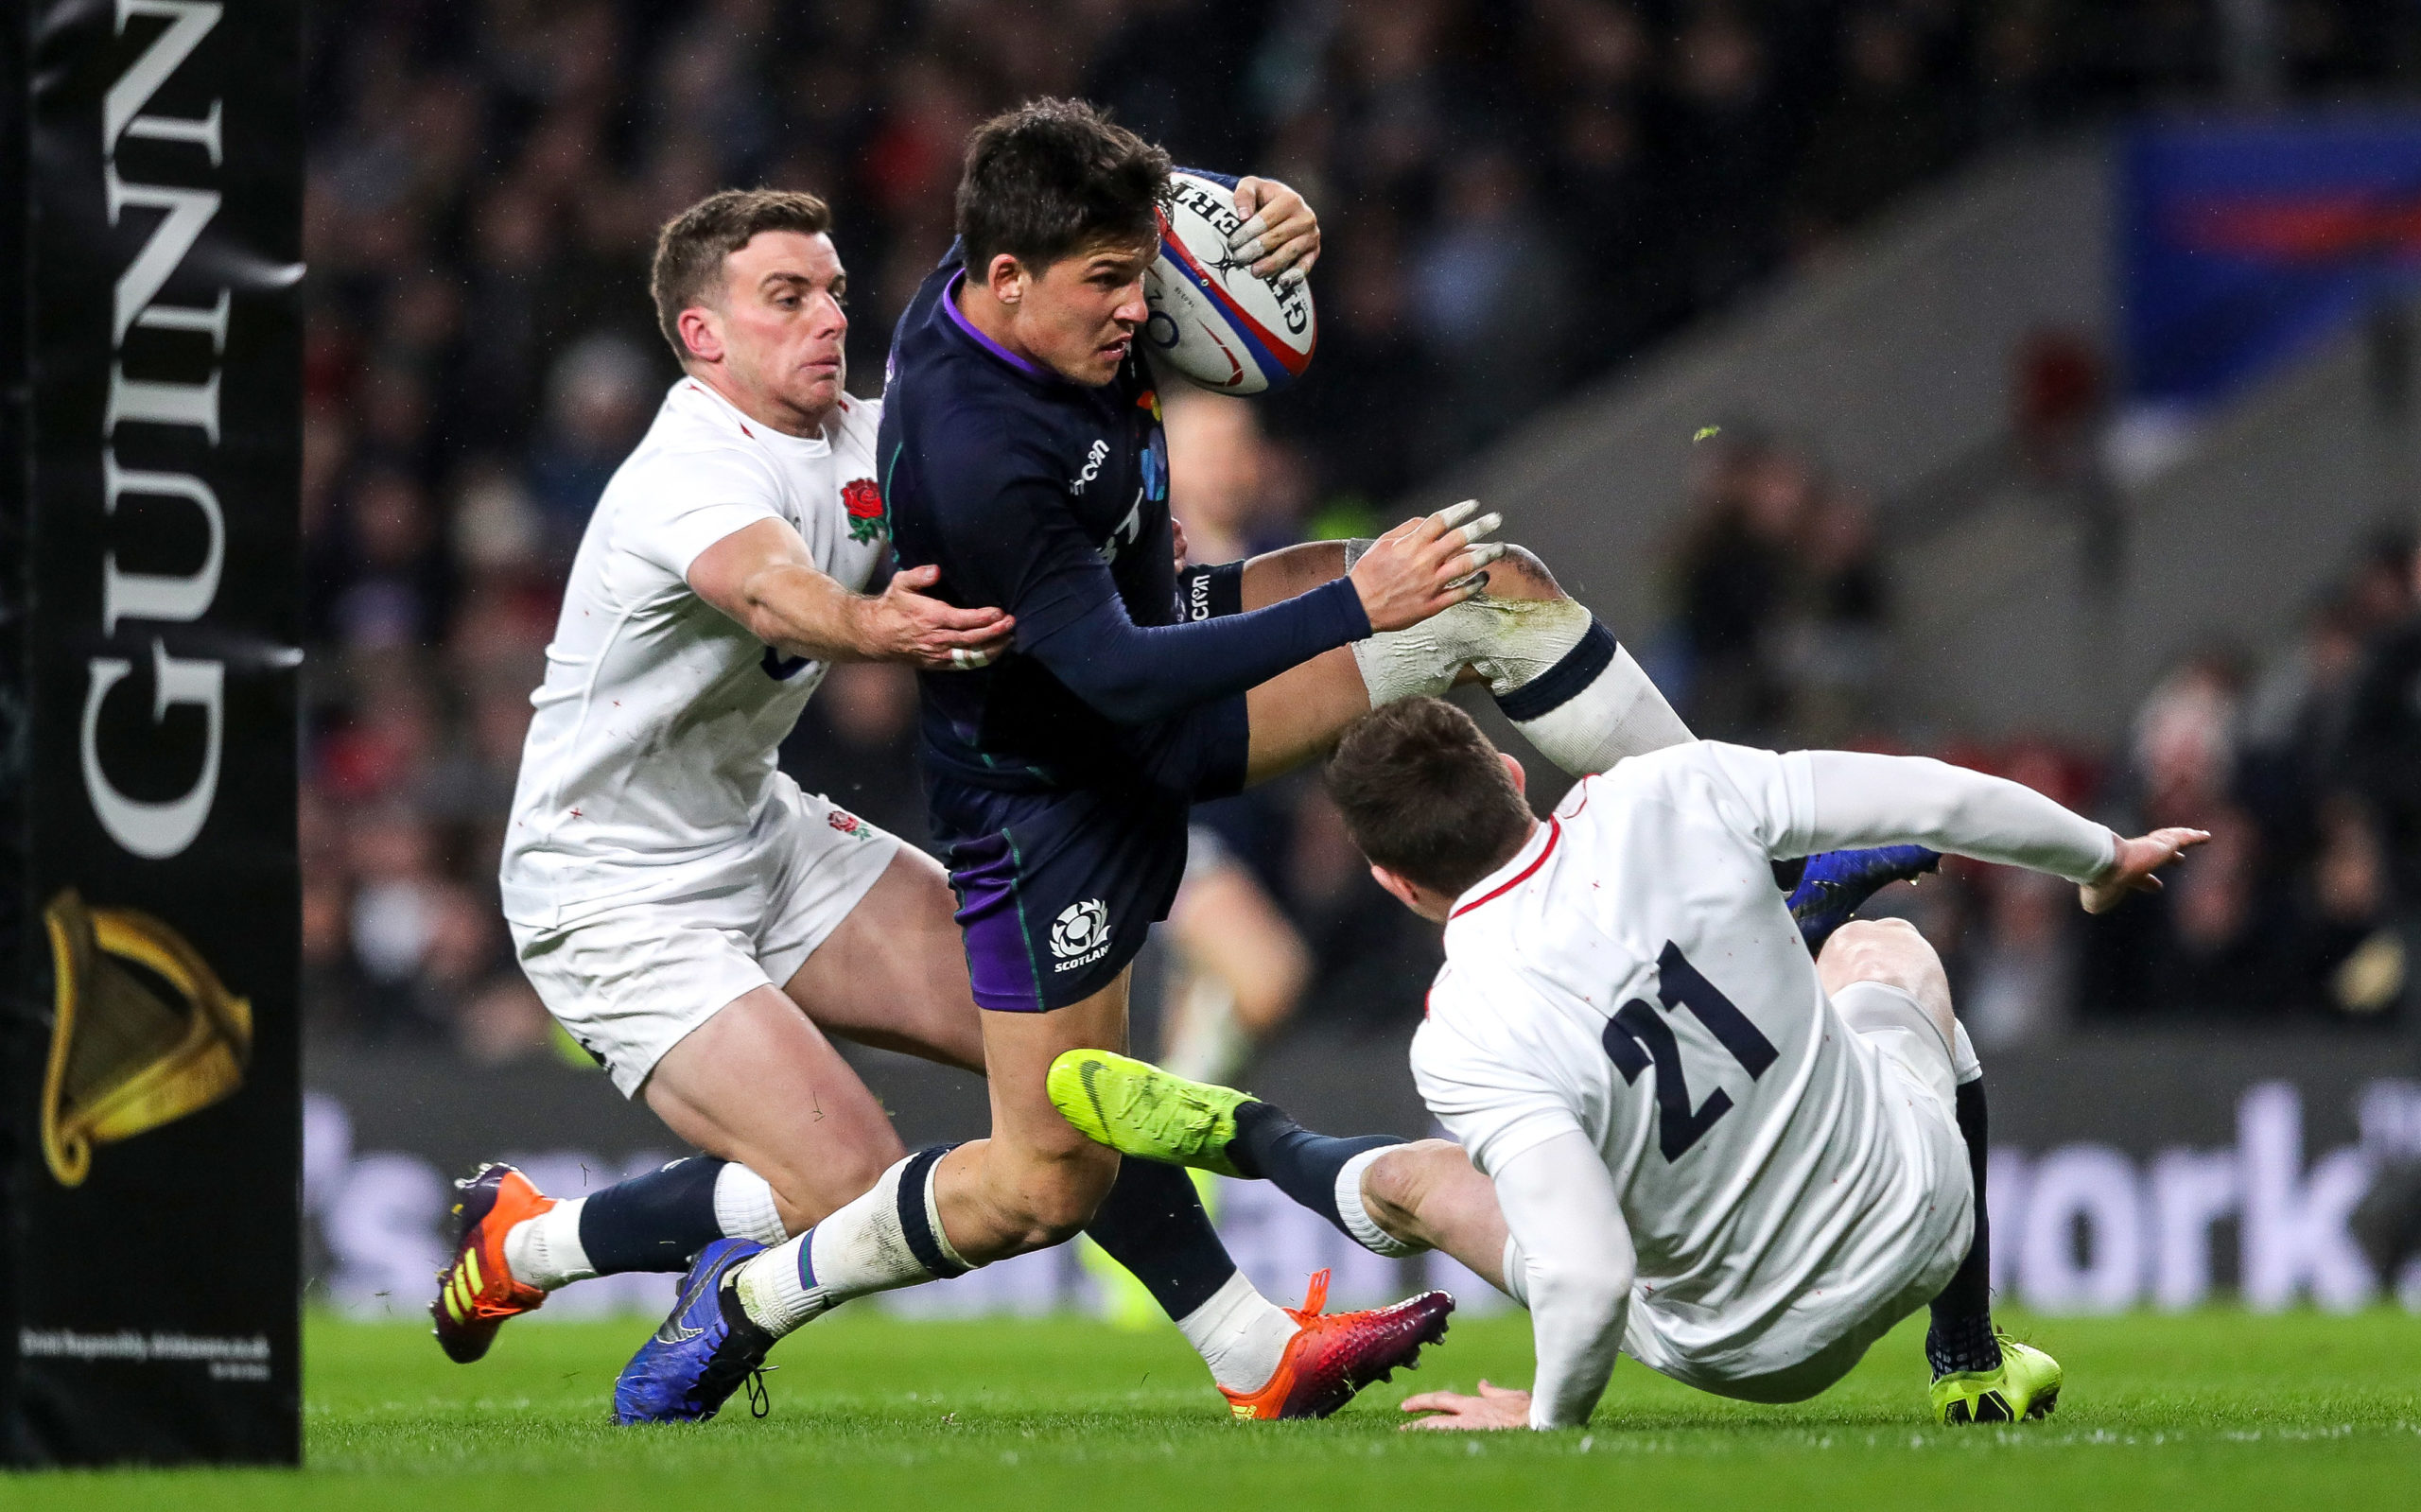 Sam Johnson goes through to score his dramatic try in last year's Calcutta Cup.